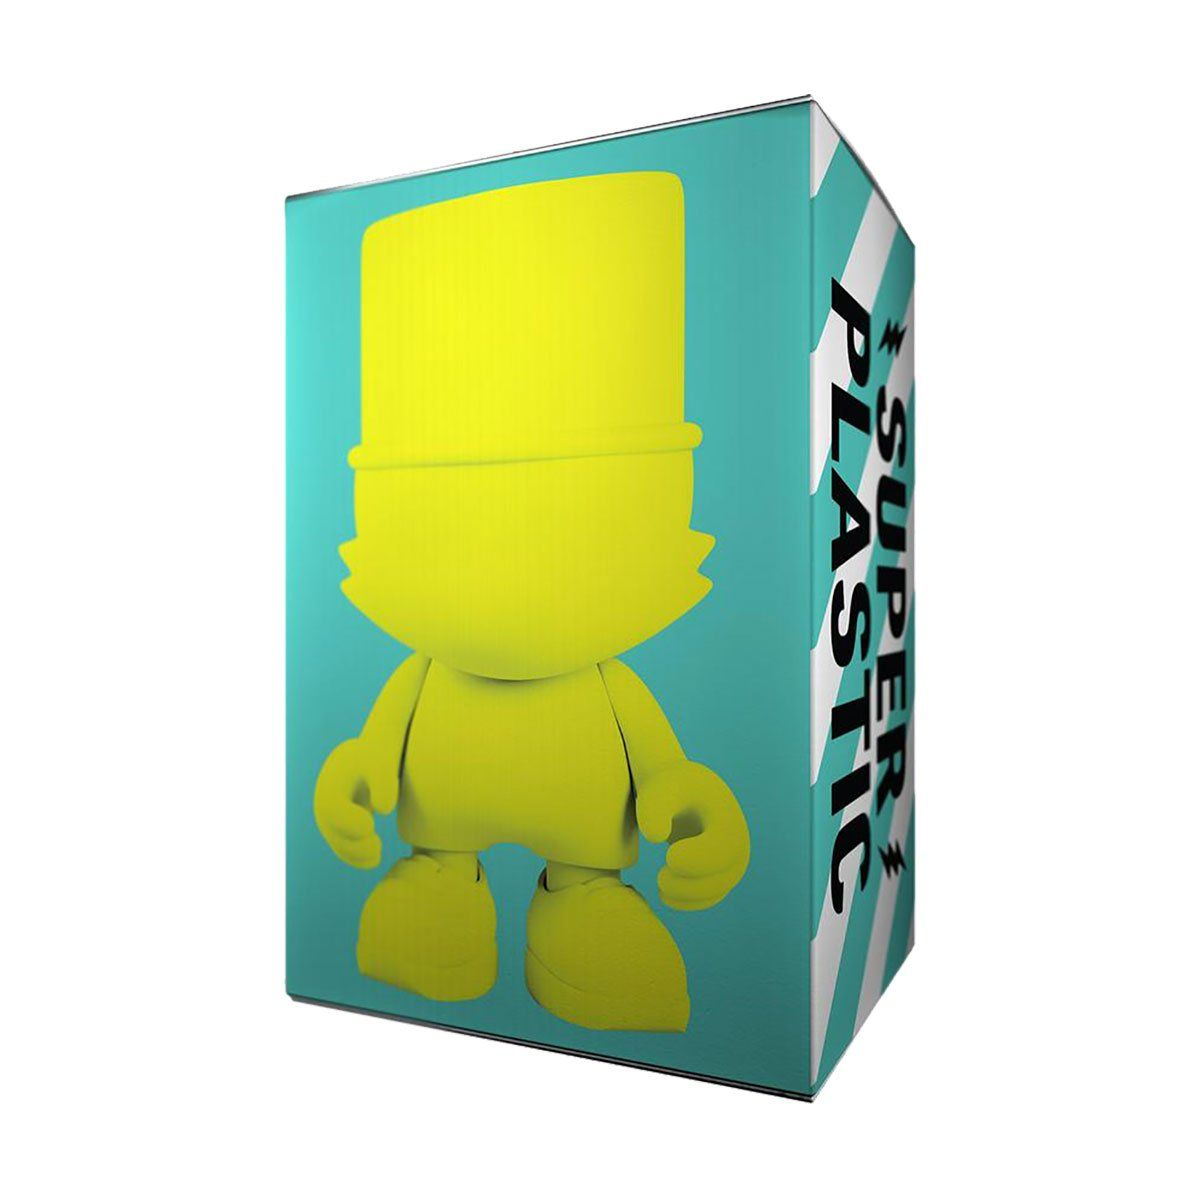 "Yellow UberKranky 15"" Vinyl Figure by Sket One & Superplastic 15-inch Vinyl Figure Superplastic"